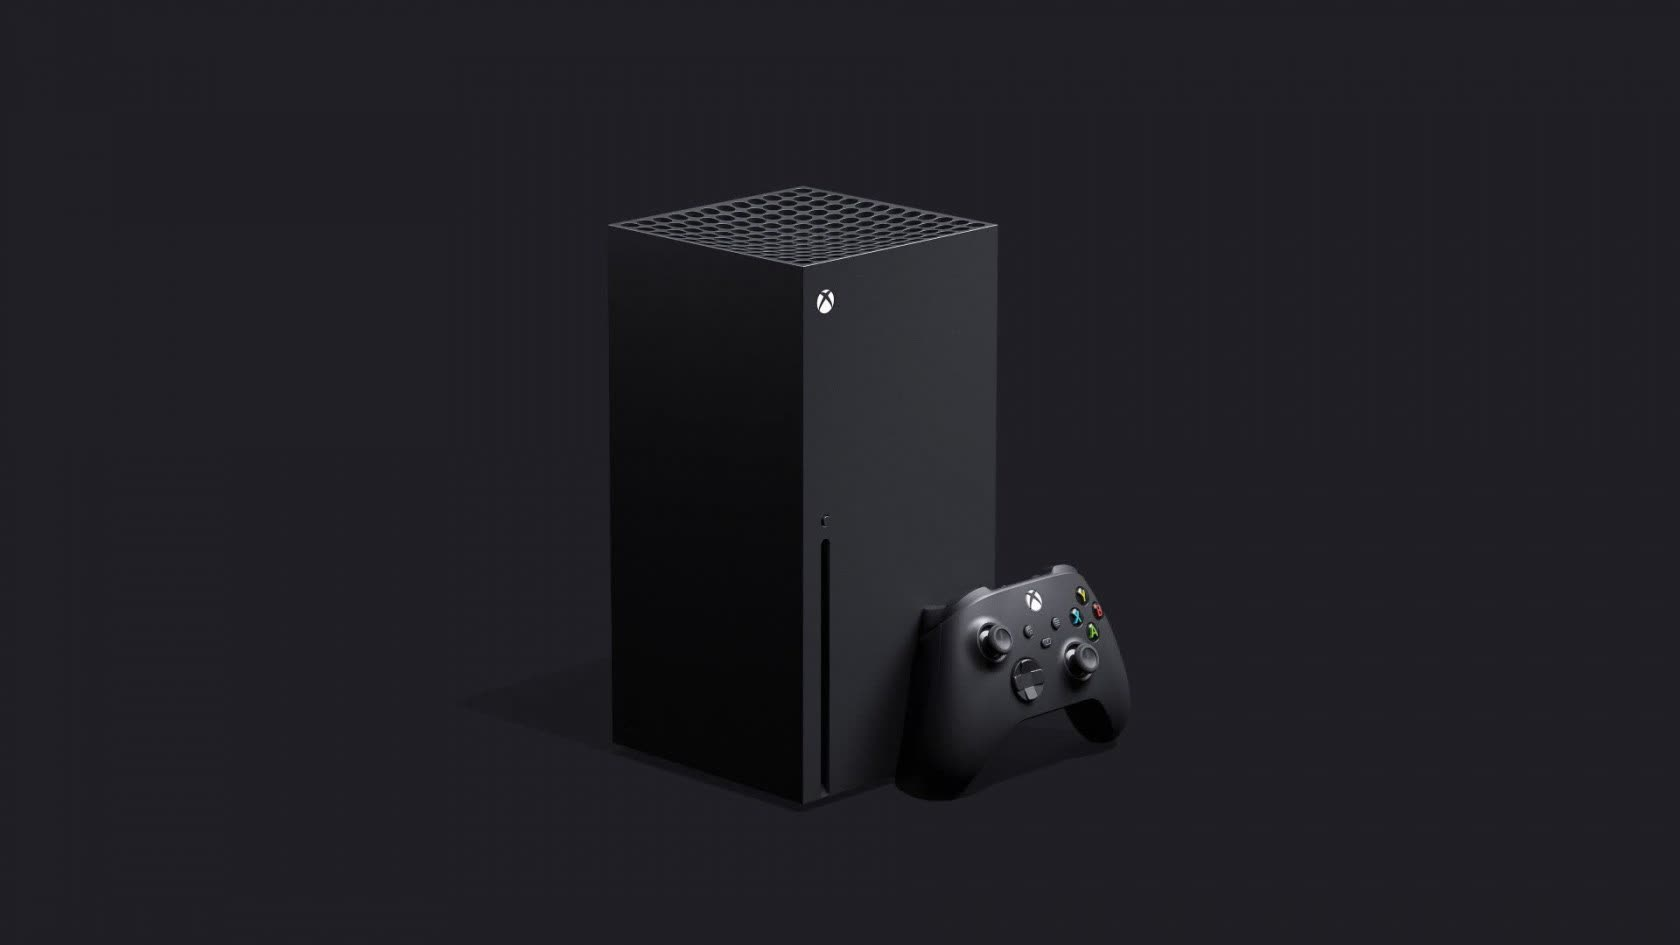 Microsoft's latest Xbox Series X demo shows off the console's full feature set